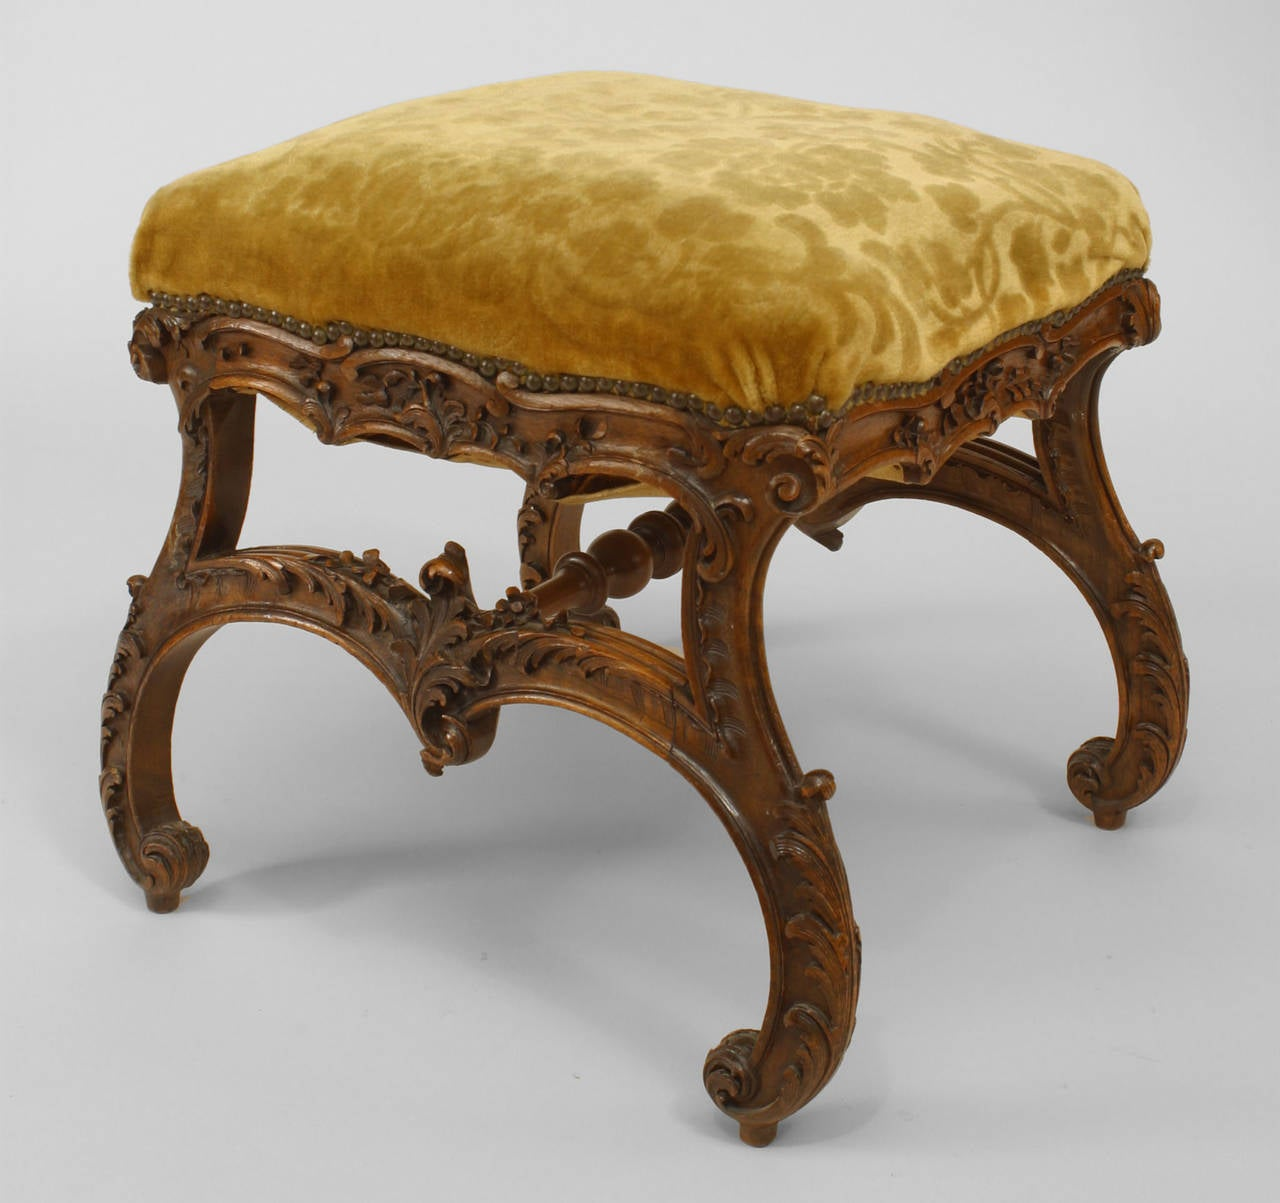 19th century Italian Baroque style walnut square bench with scroll form legs connected with a replaced stretcher and a gold velvet upholstered seat.